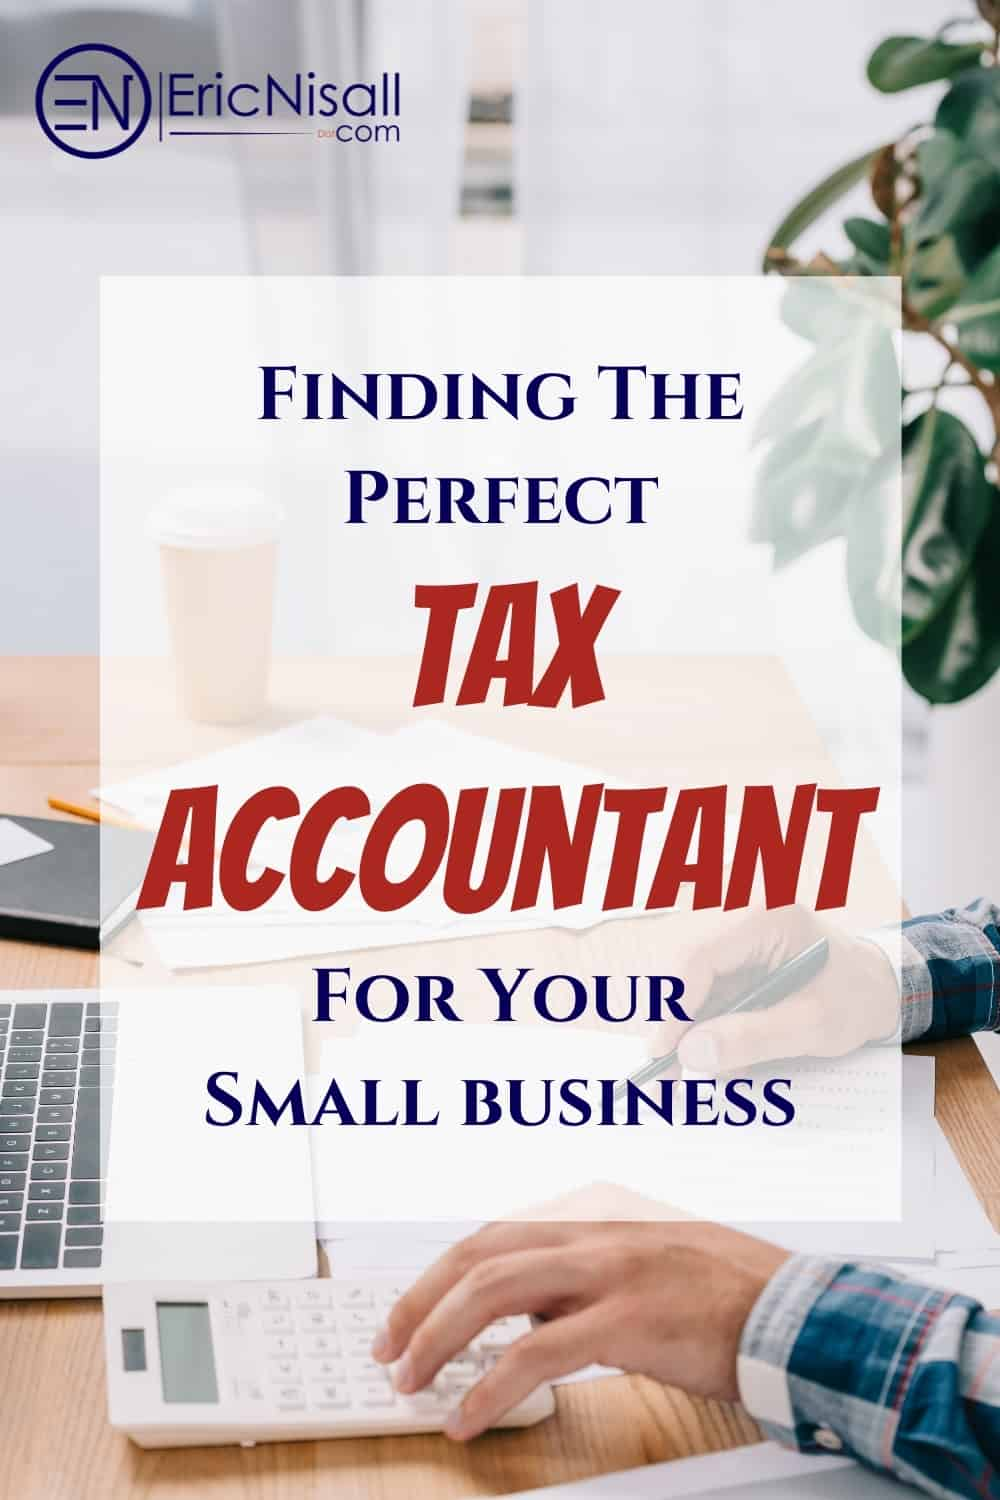 When it comes to hiring a tax accountant, you need to be selective. Not every accountant will be right for your business. These tips will help you hire the right person. via @ericnisall